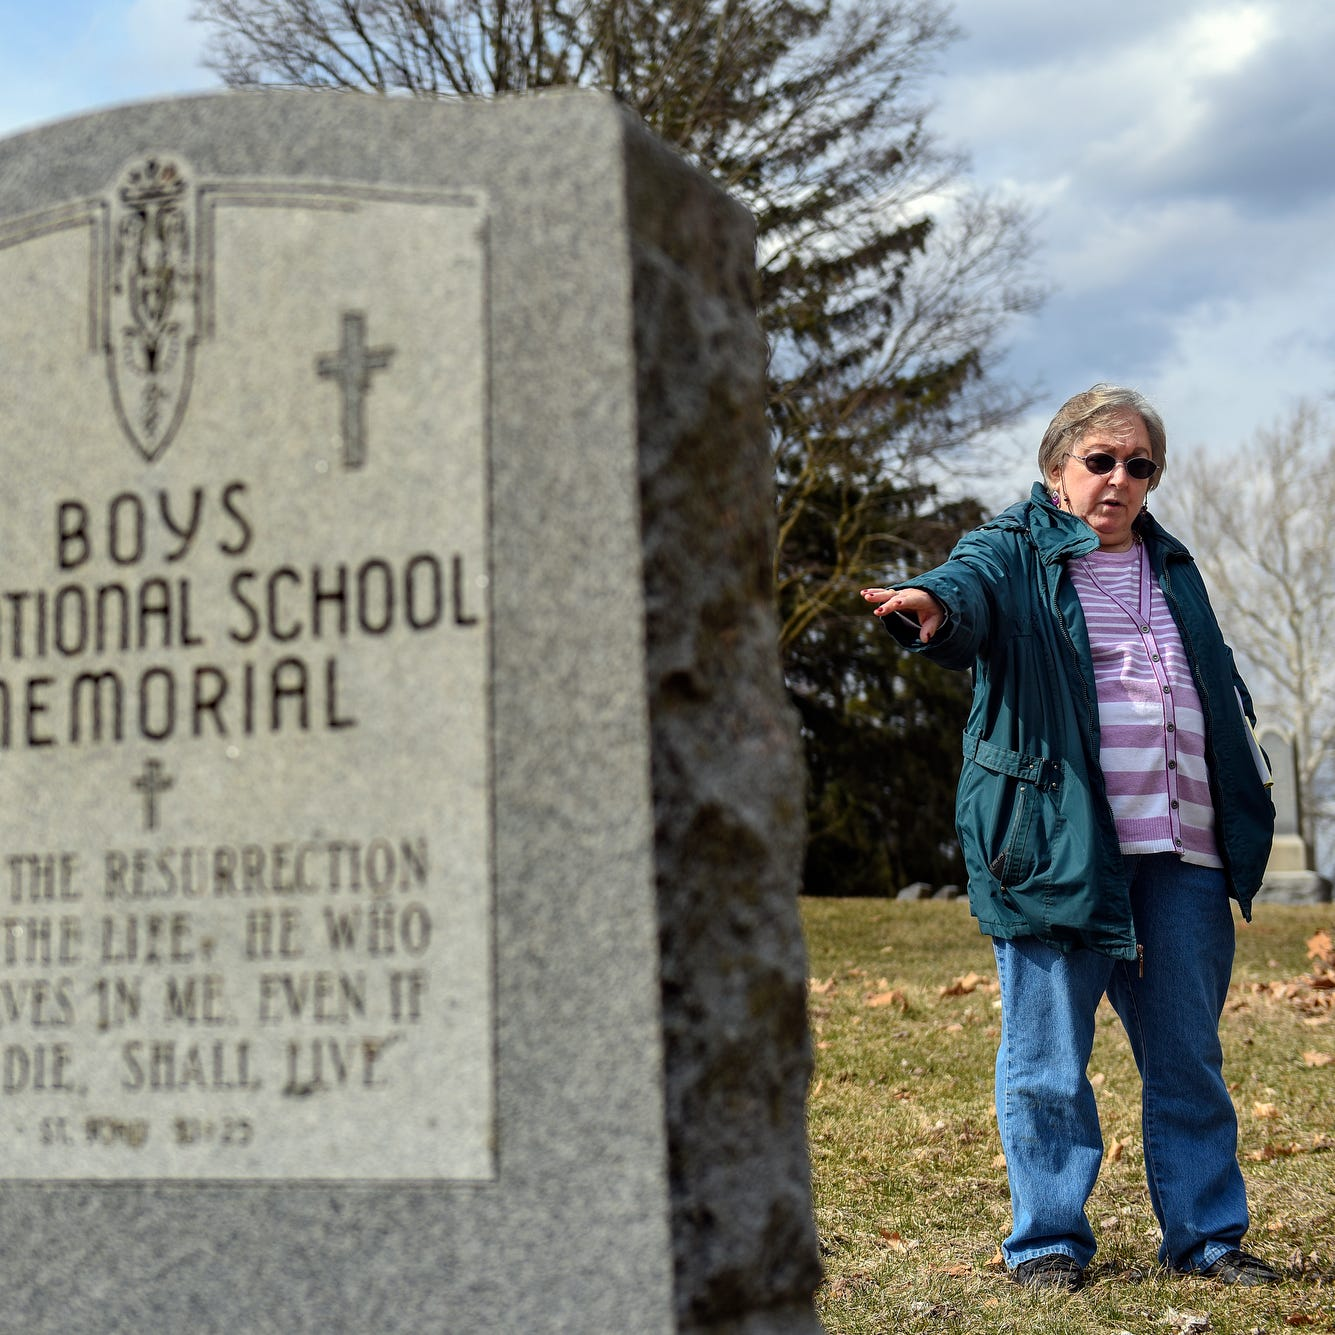 60 boys lie in unmarked graves at Mt. Hope Cemetery. They deserve 'recognition that they had lived and died.'